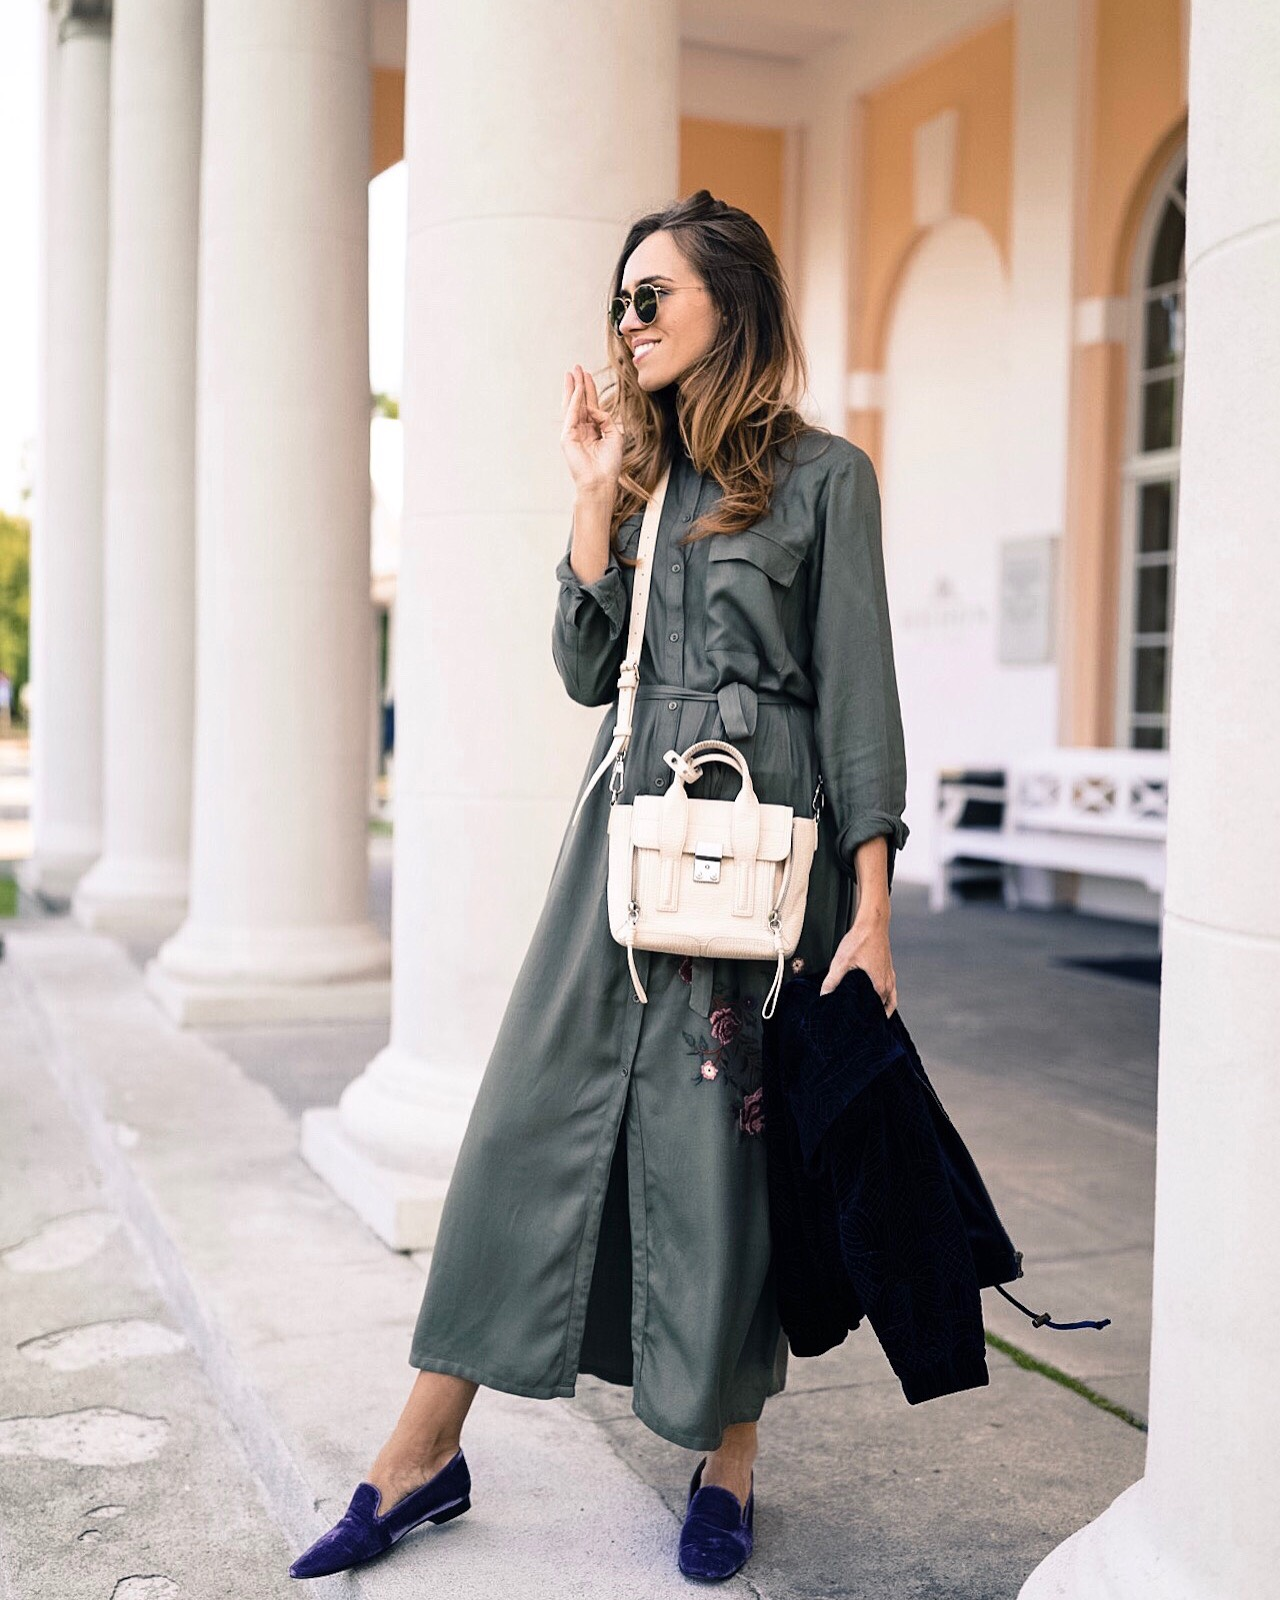 kristjaana long shirt dress outfit